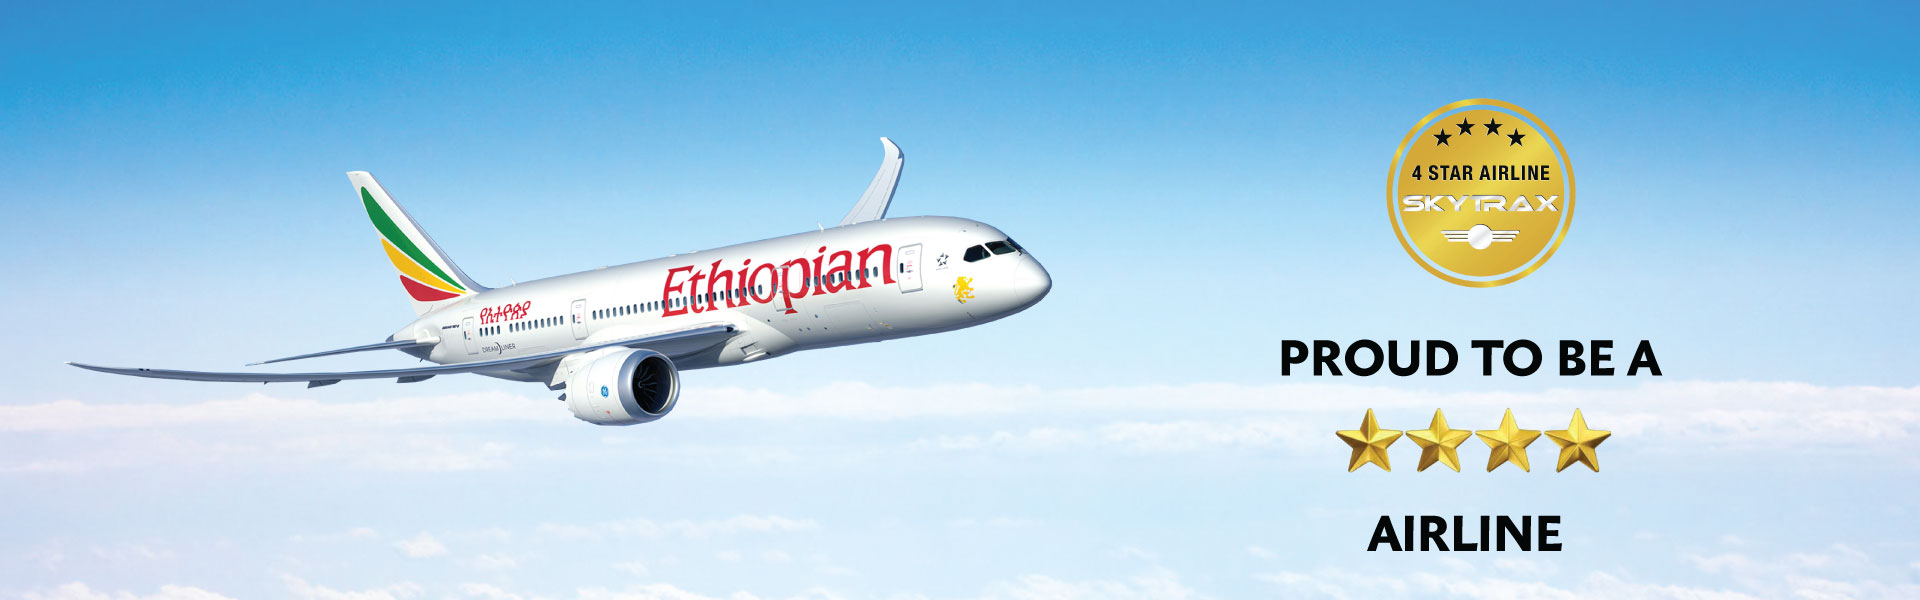 Ethiopian-Airlines SKYTRAX